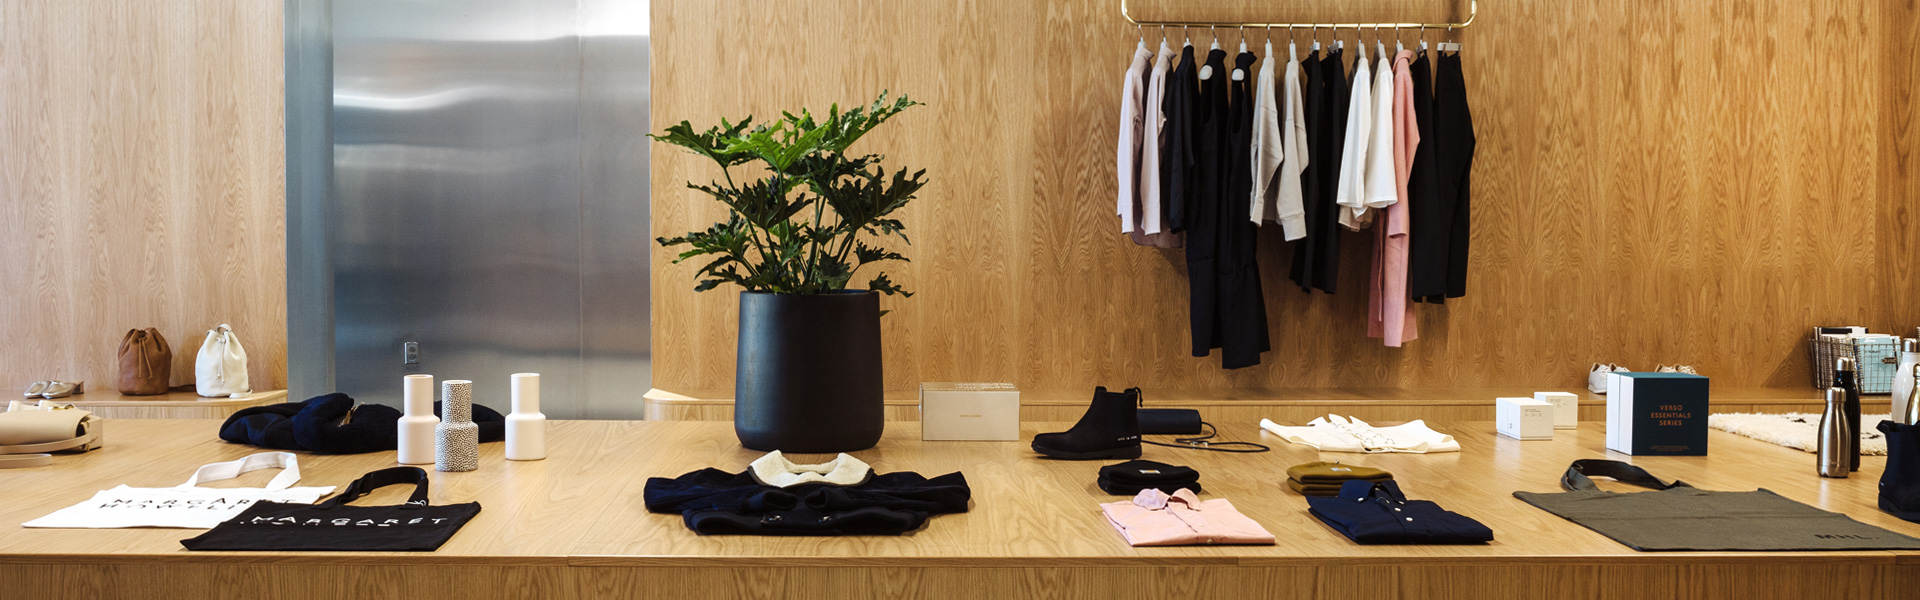 High-end retailer meets warehouse needs with SnapFulfil